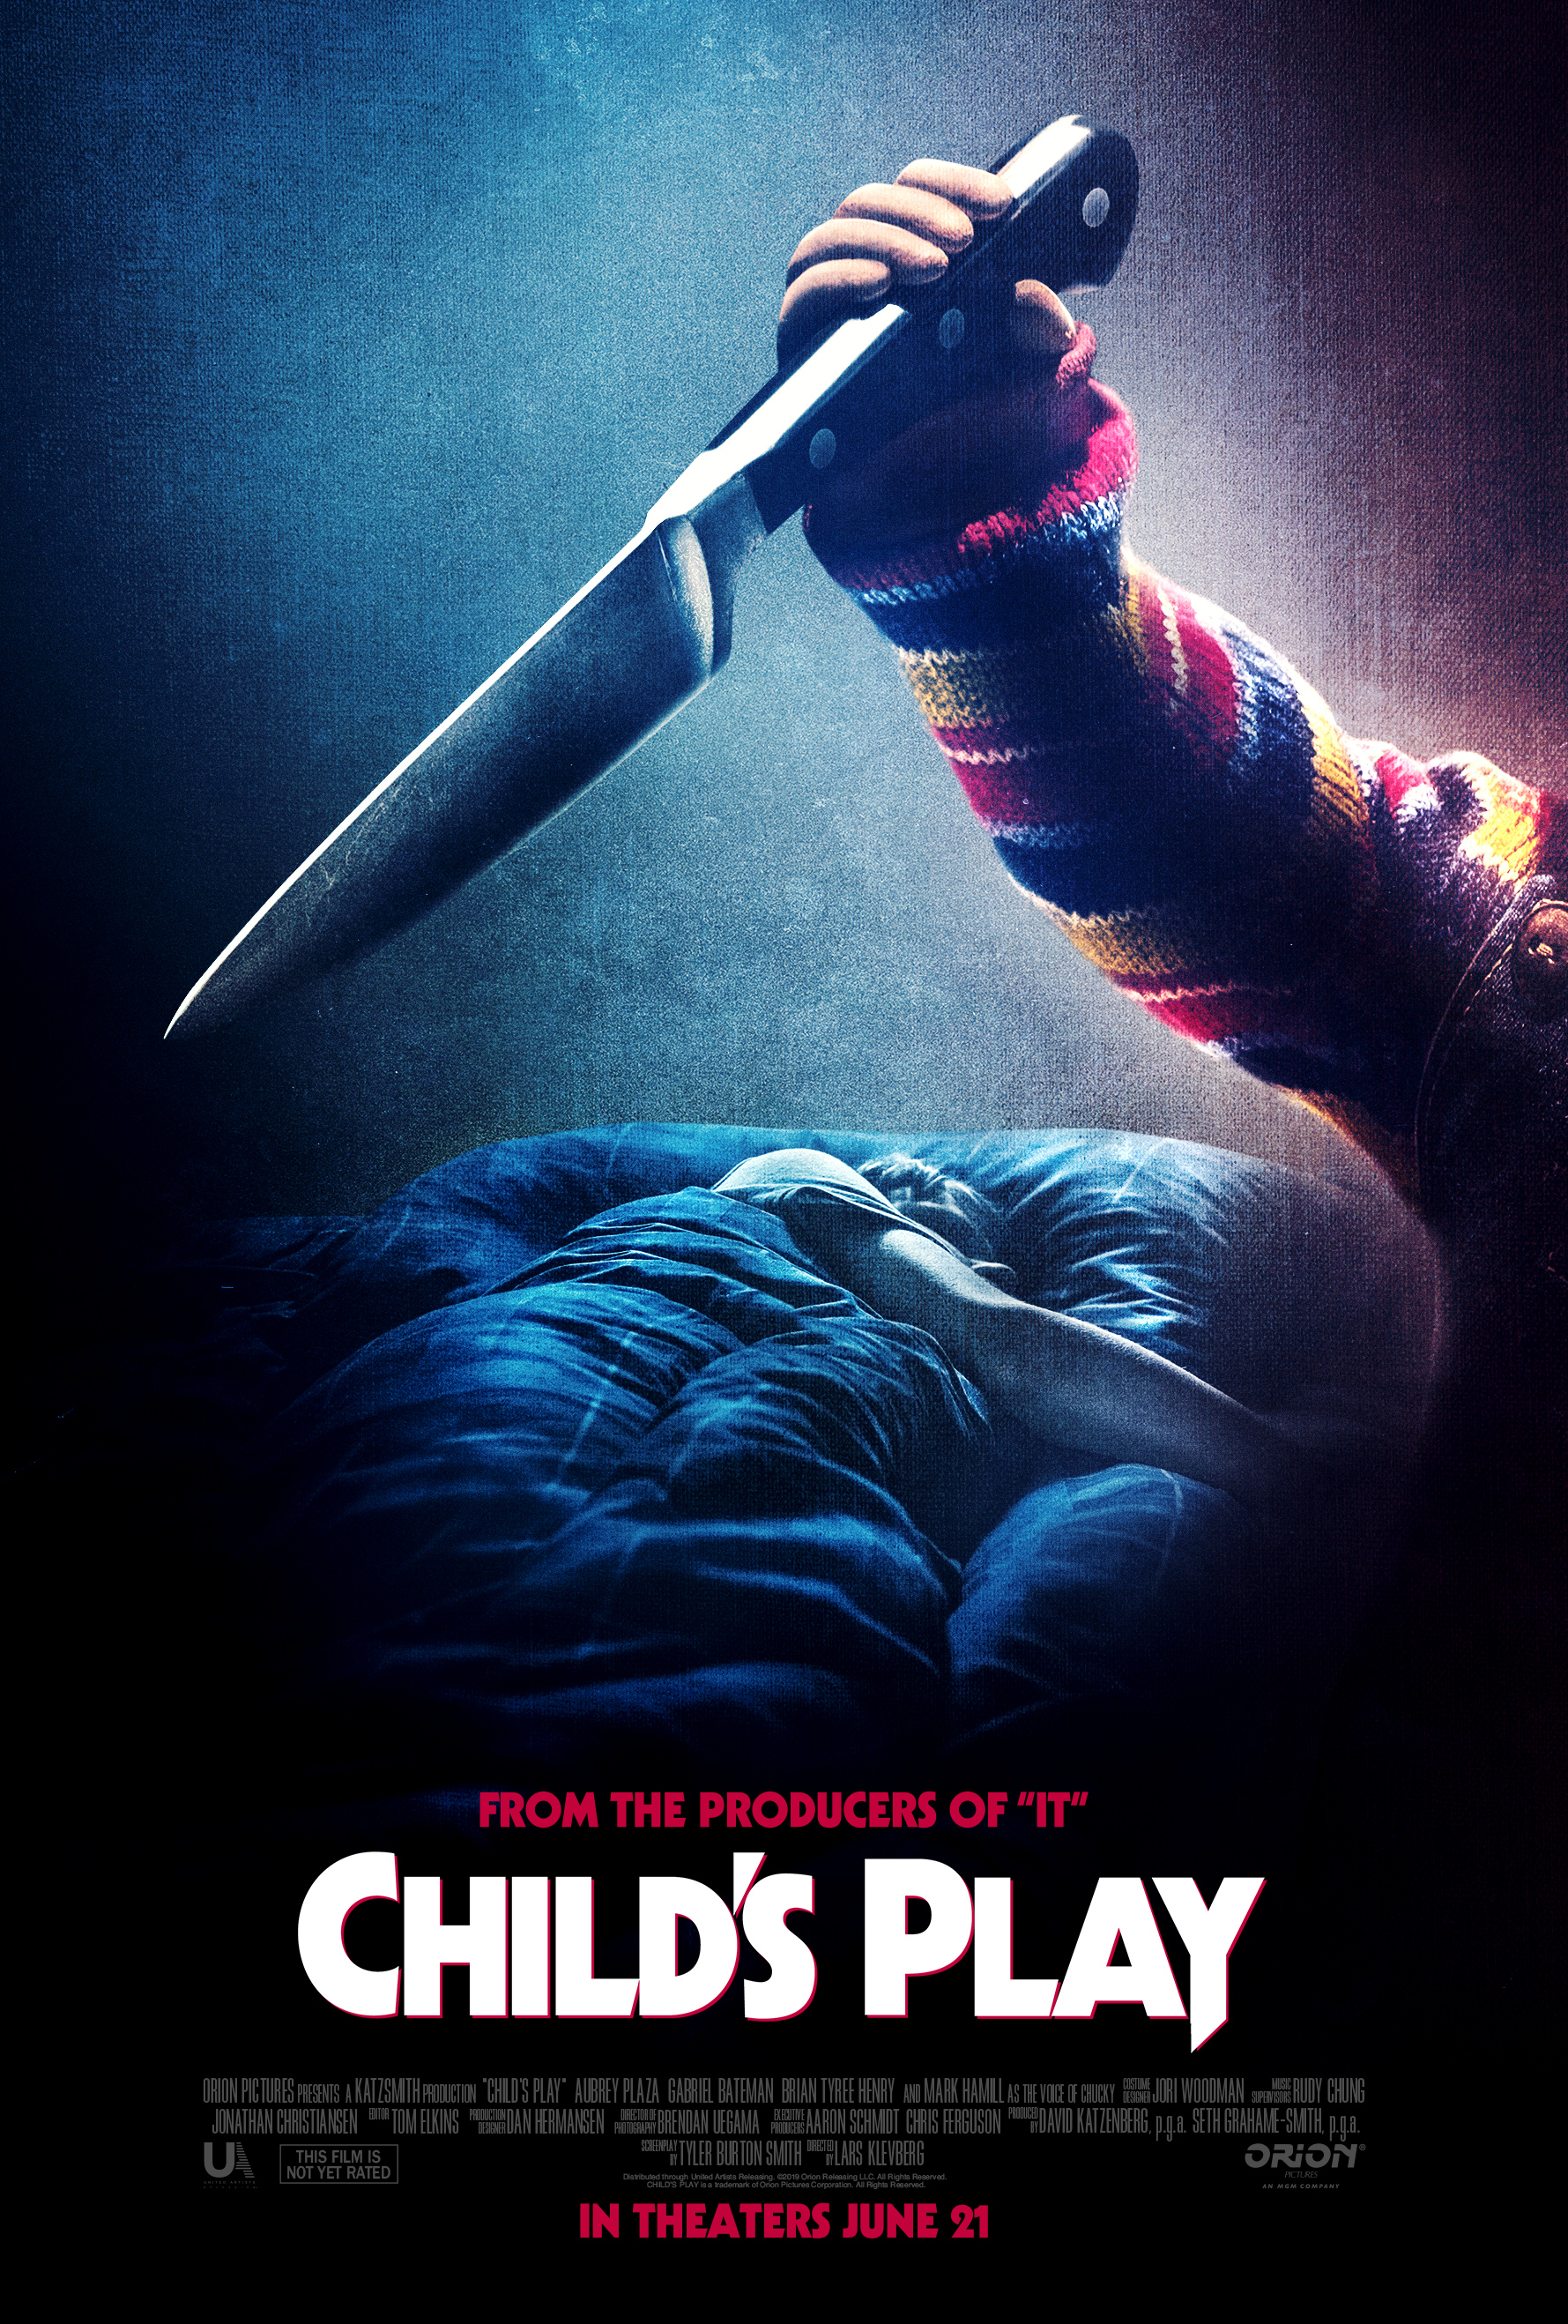 2019's  Child's Play  remake navigates the traps of postmodern horror, and provides some interesting commentary on our political-digital moment.